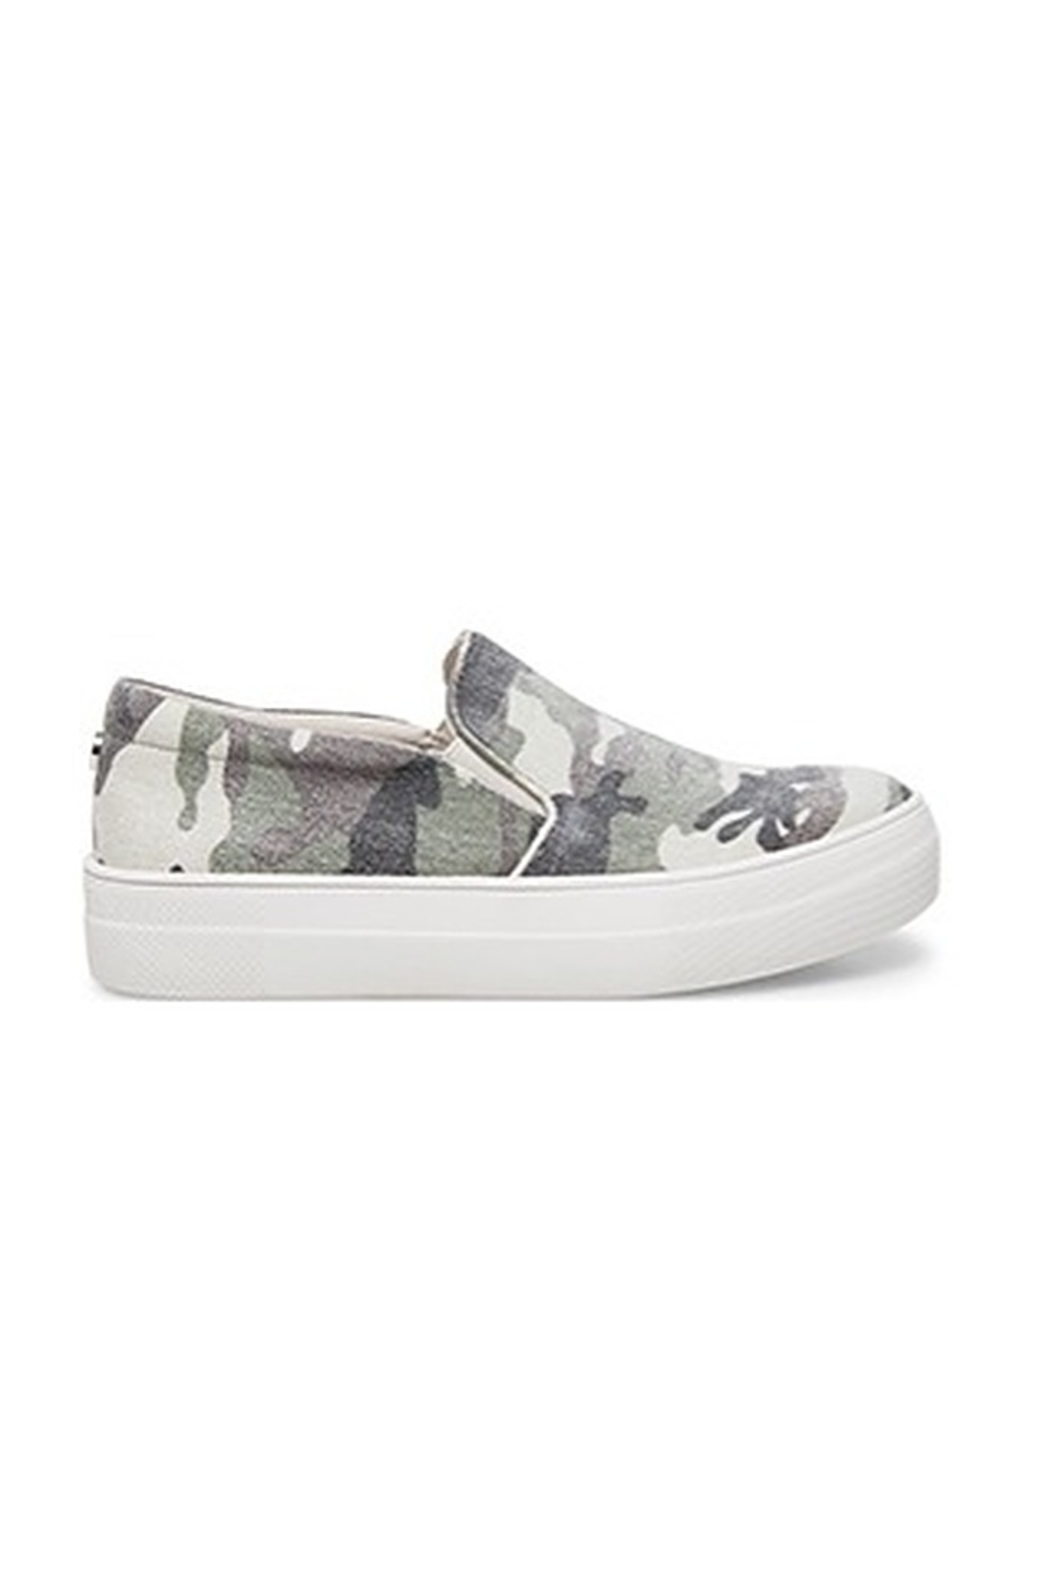 Steve Madden Shoes Gills Camo Sneaker - Front Cropped Image